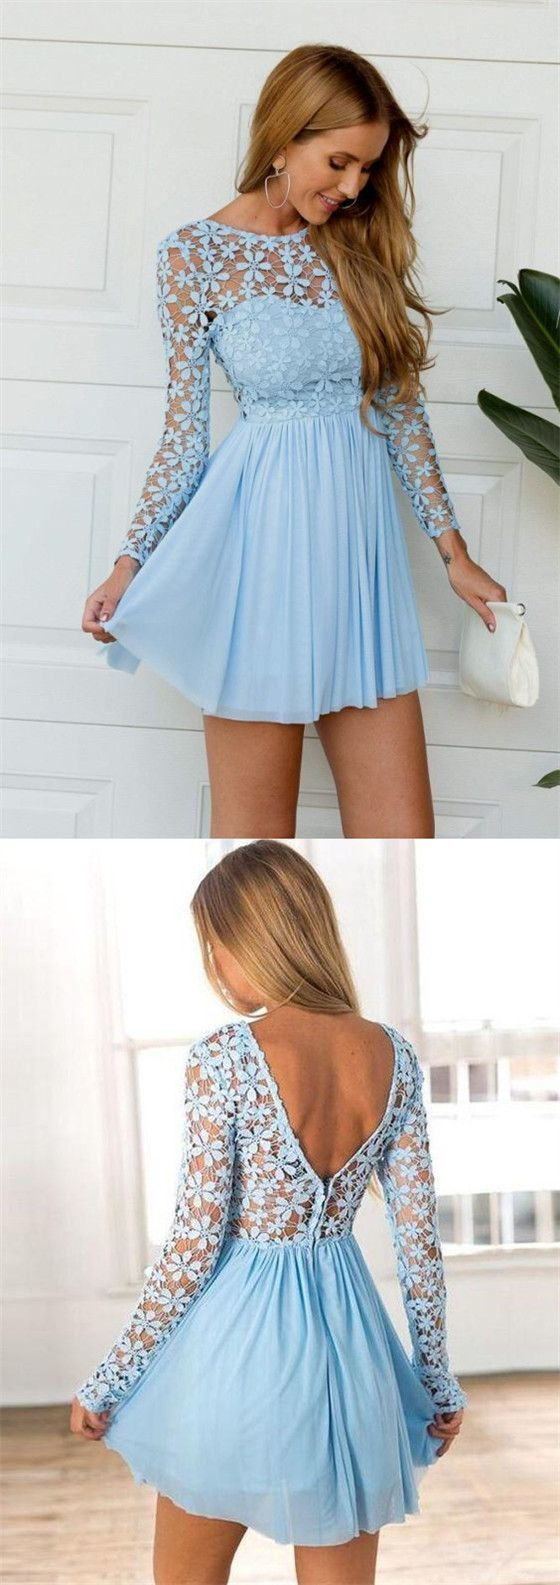 Charming Blue Illusion Lace Top See Through Long Sleeves A-Line Short Homecoming Dresses #schooldancedresses